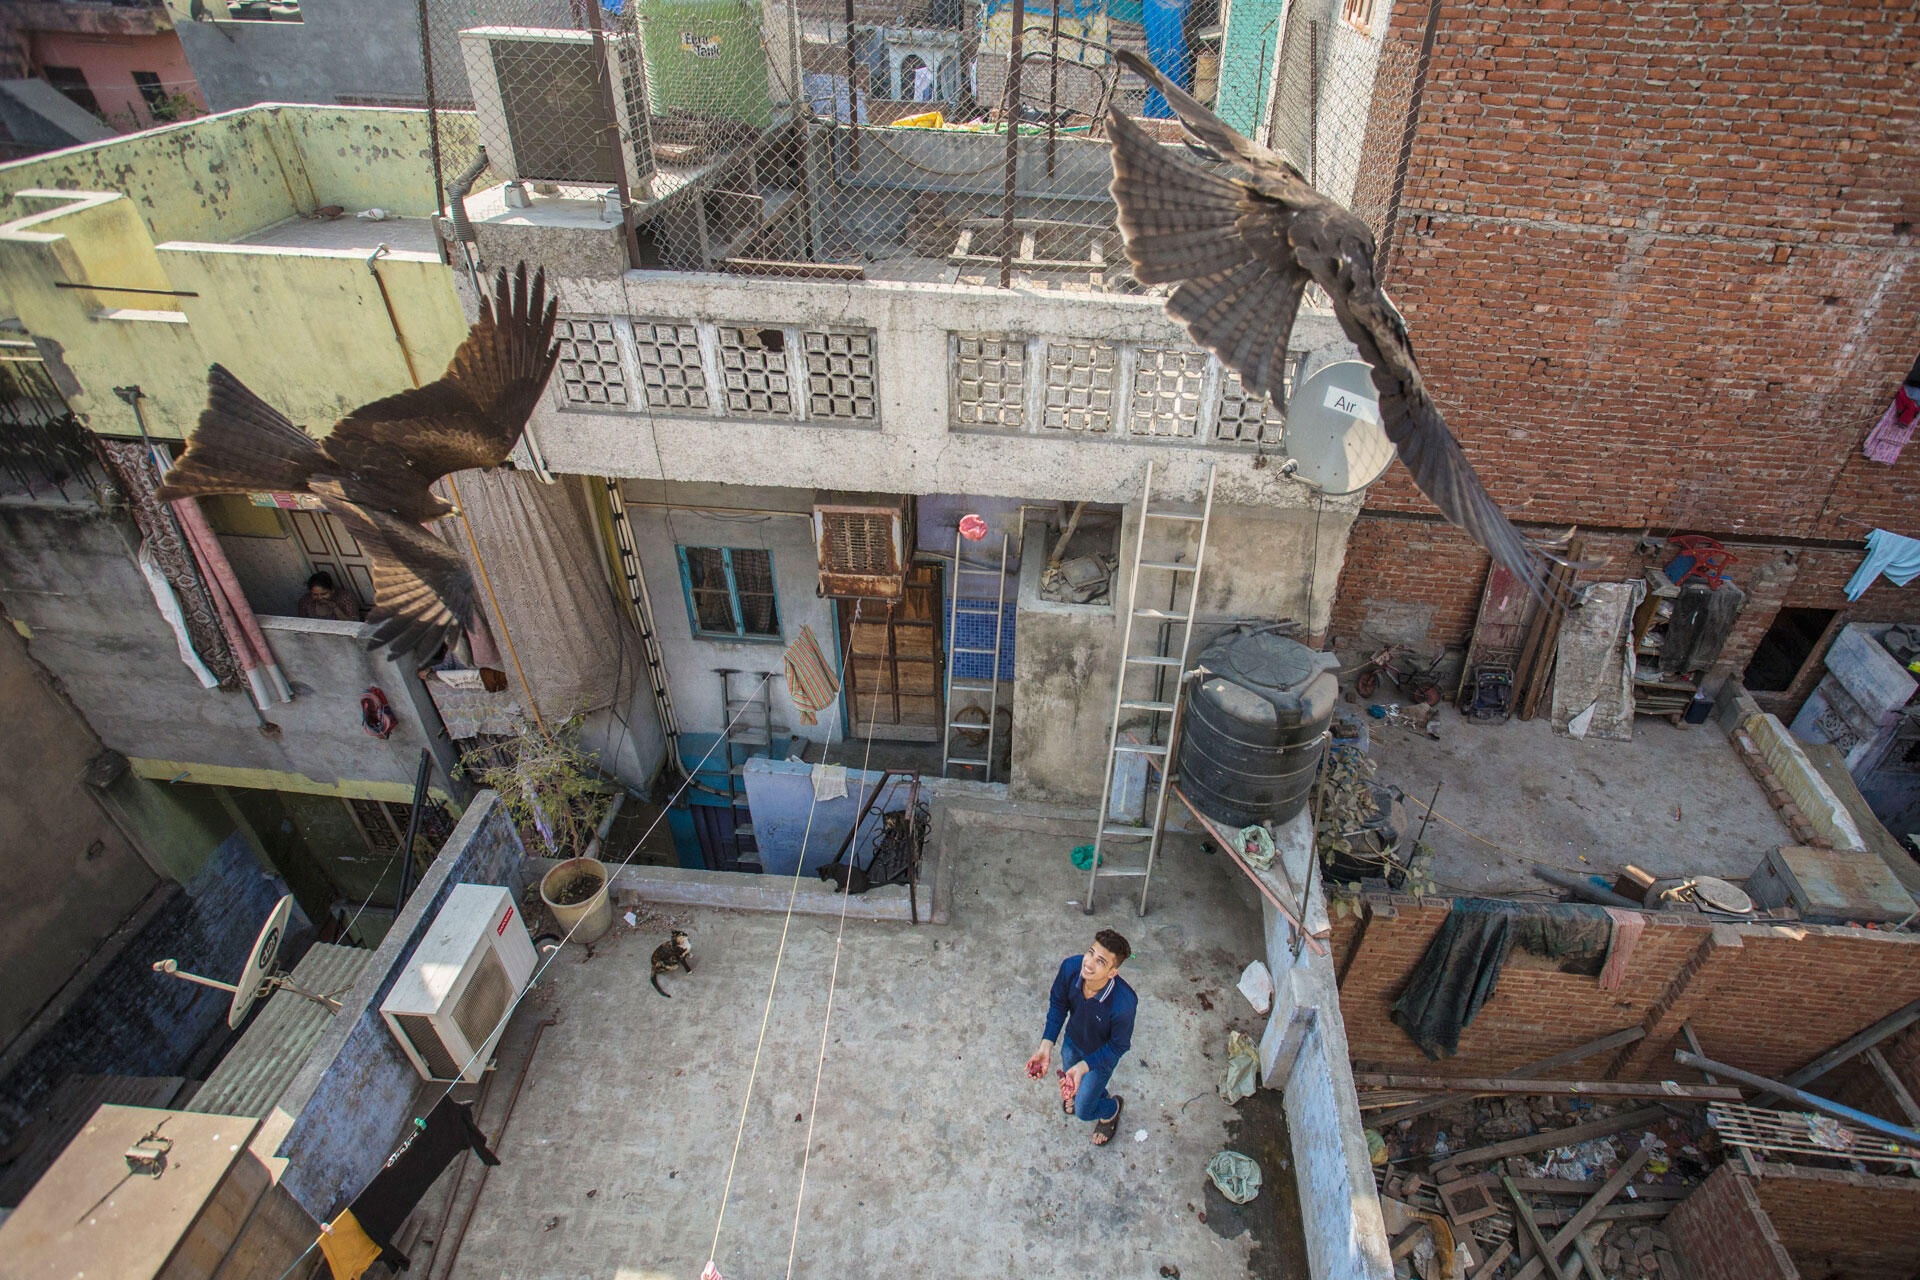 A young man tosses meat scraps to Black Kites as an act of atonement in Delhi's Muslim quarter. Luke Massey